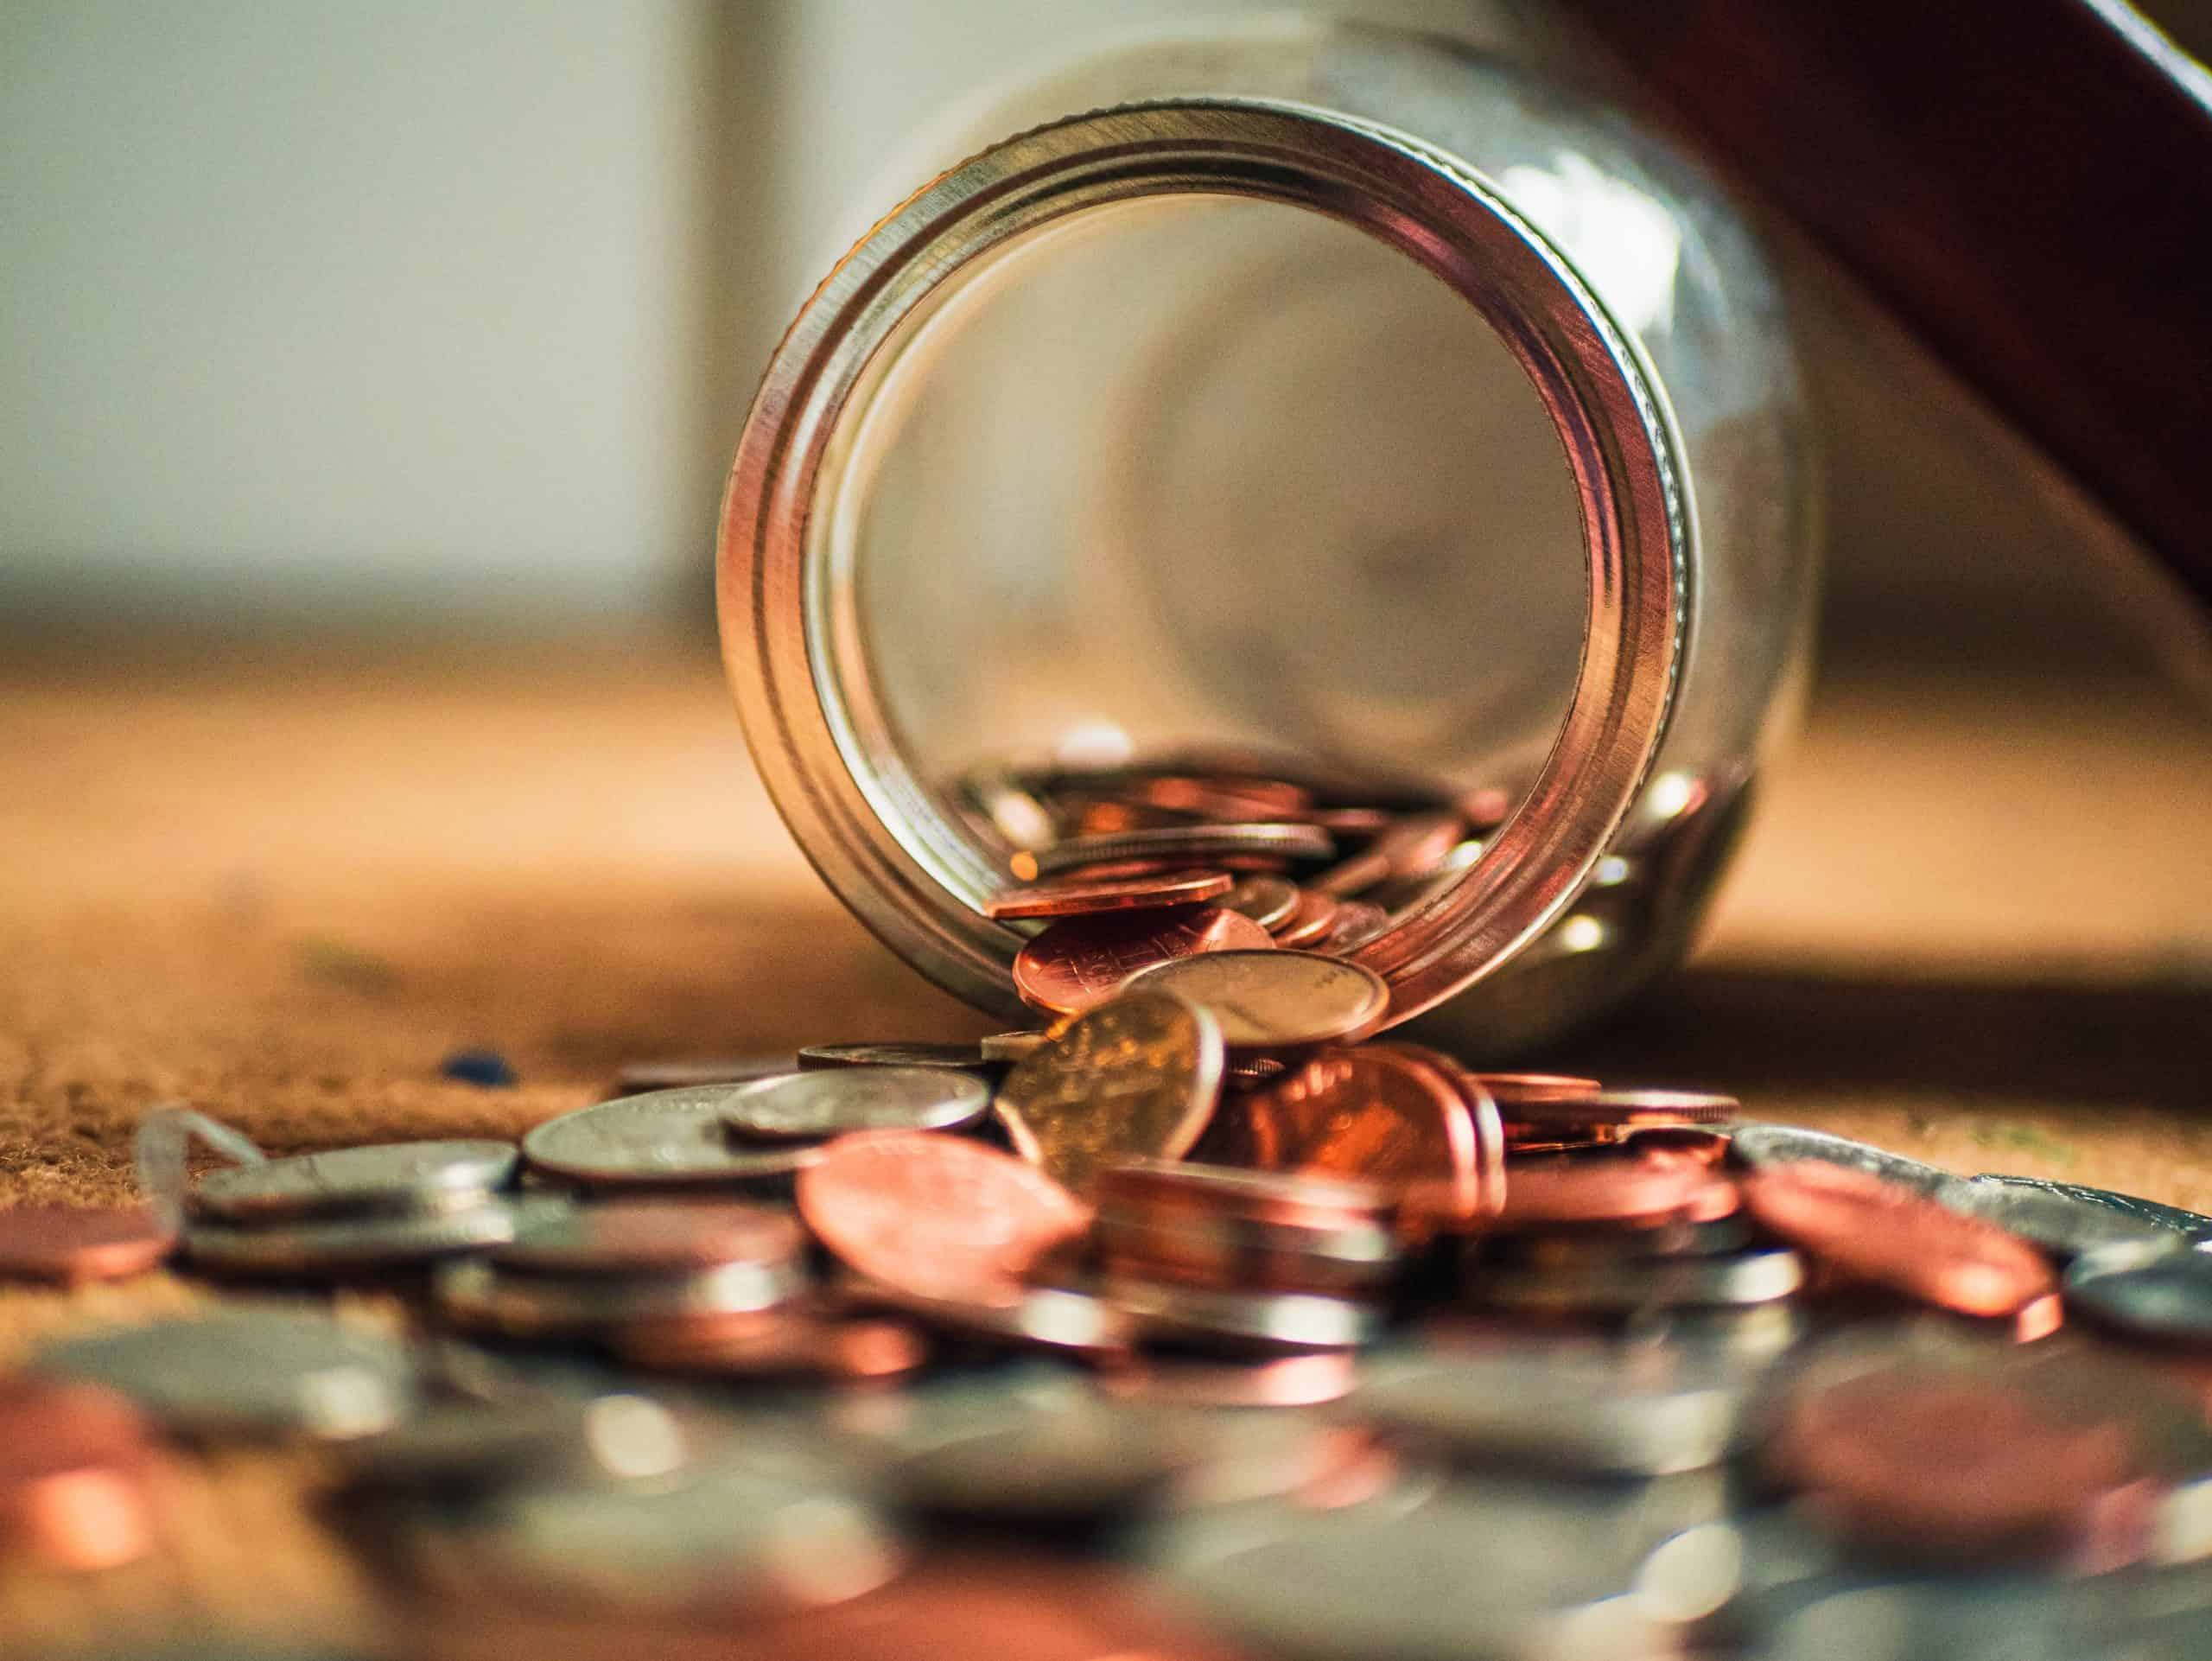 quarters dimes nickels and pennies pouring out of a mason jar on a hardwood floor